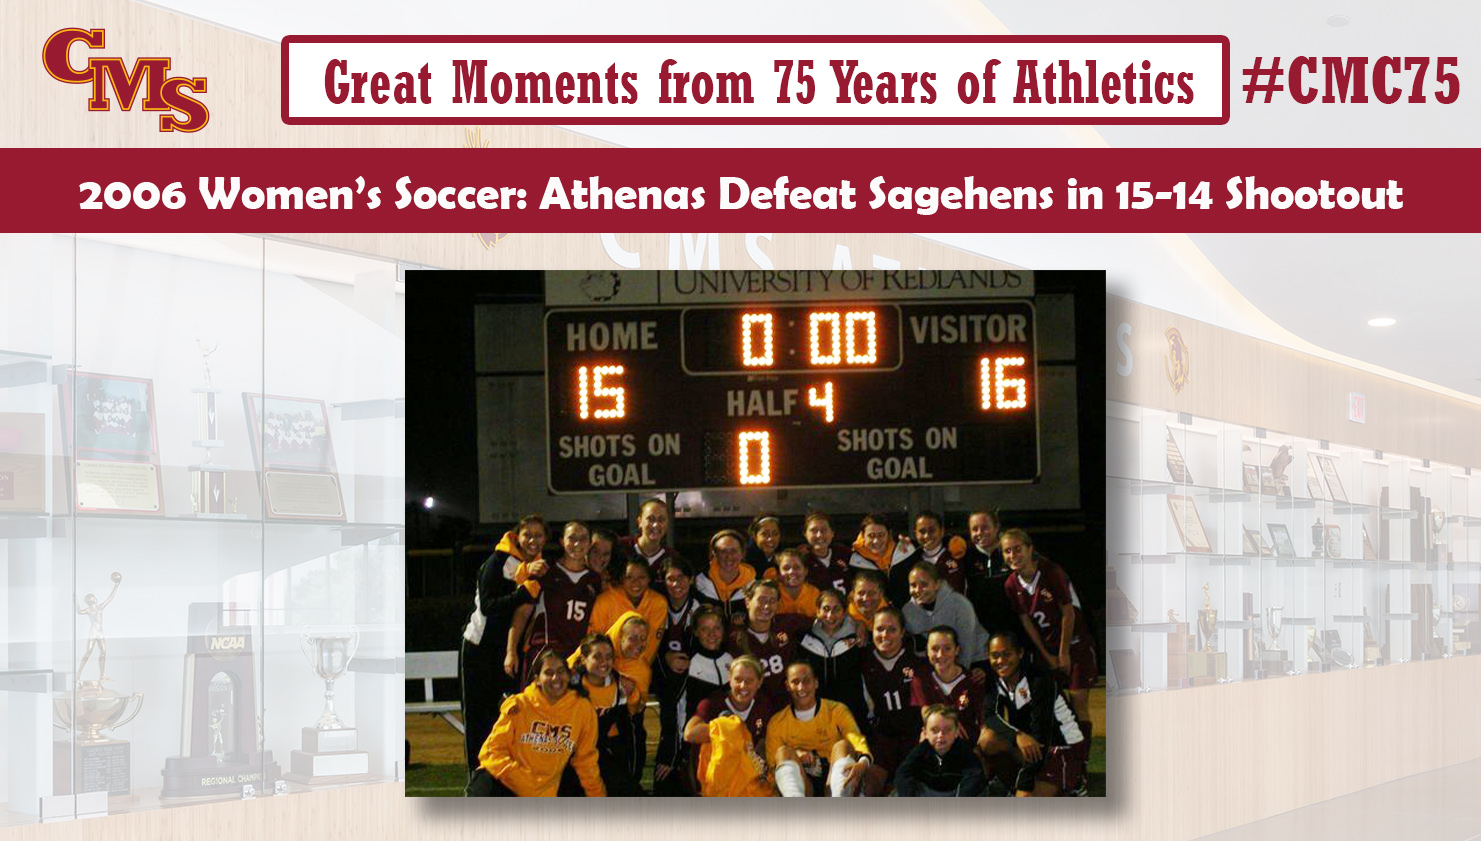 CMS women's soccer celebrating under the scoreboard after the 2006 win. Words over the photo read: Great Moments from 75 Years of Athletics, 2006 Women's Soccer: Athenas Defeat Sagehens in 15-14 Shootout